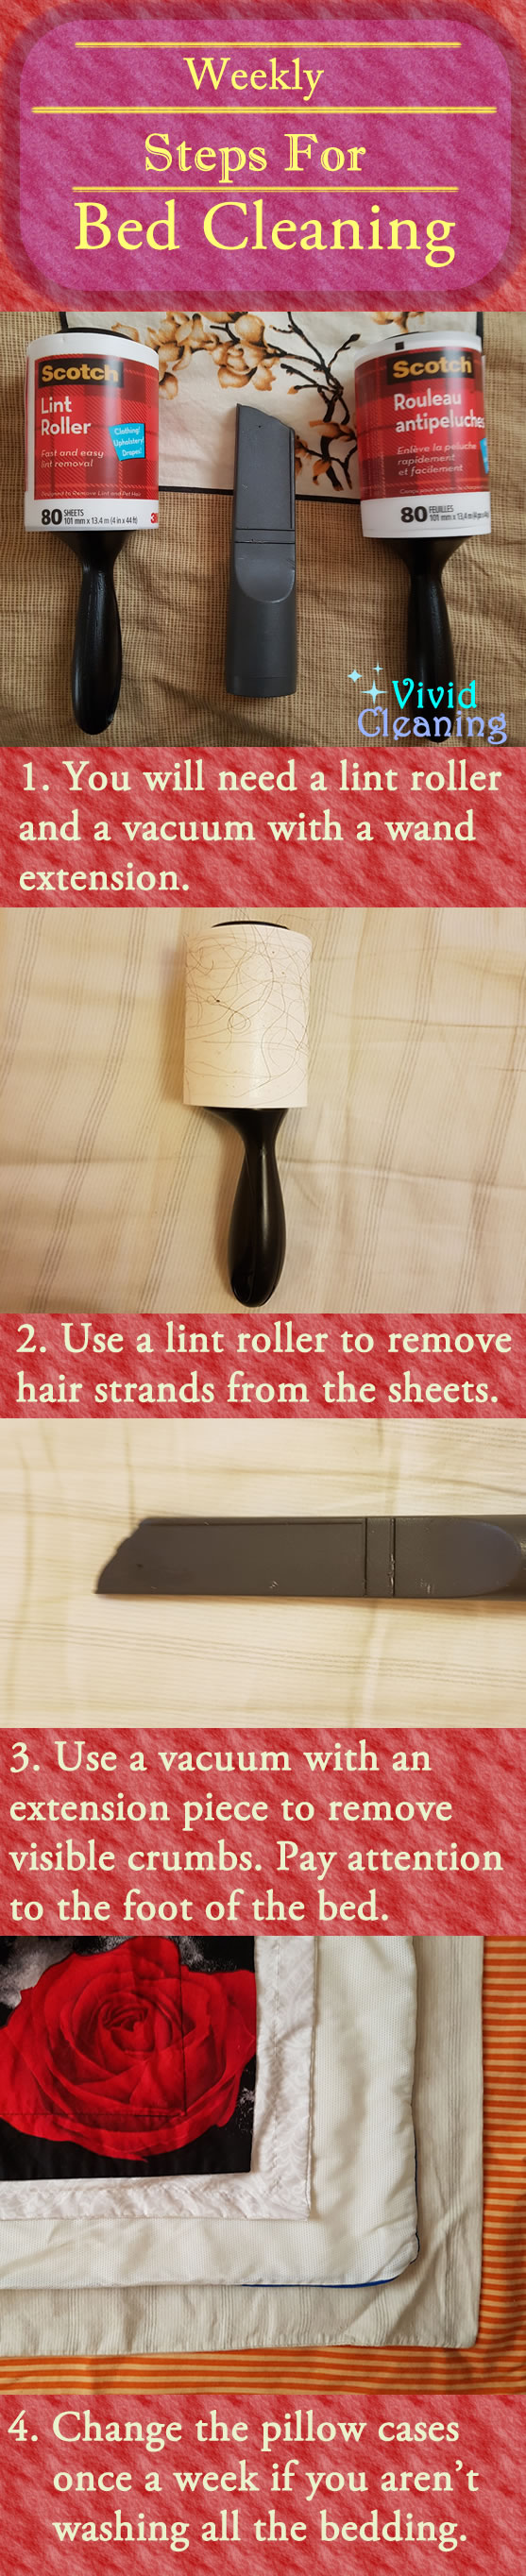 Weekly Steps for Bed Cleaning 1. You will need a lint roller and a vacuum with a wand extension. 2. Use a lint roller to remove hair strands from the sheets. 3. Use a vacuum with an extension piece to remove visible crumbs. Pay attention to the foot of the bed. 4. Change the pillow cases once a week if you aren't washing all the bedding.